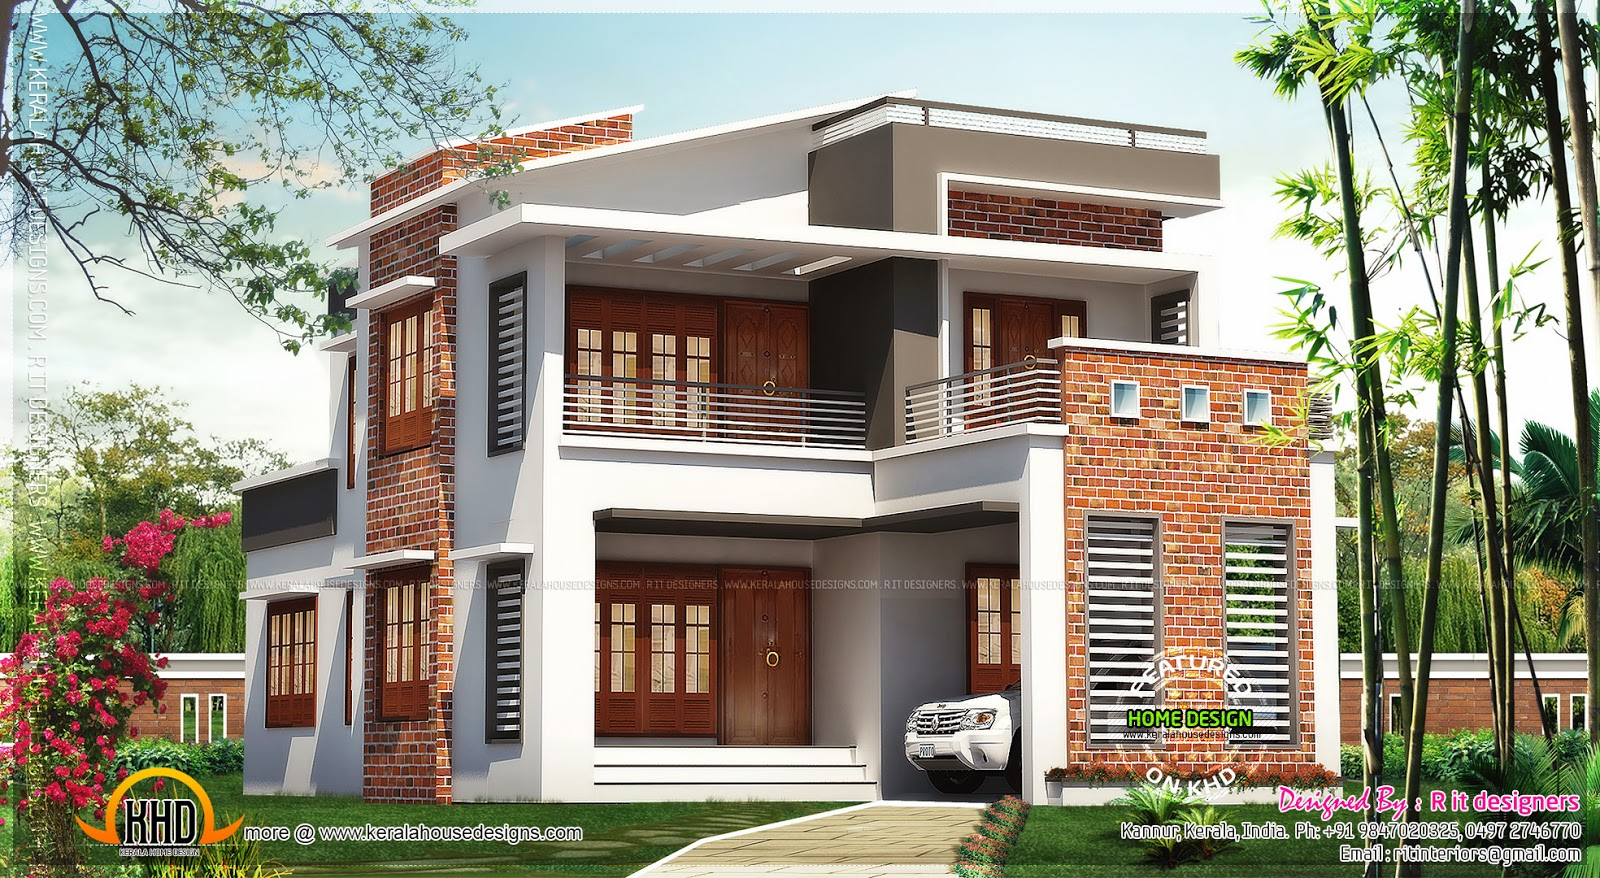 Brick mix house exterior design kerala home design and for Indian home front design